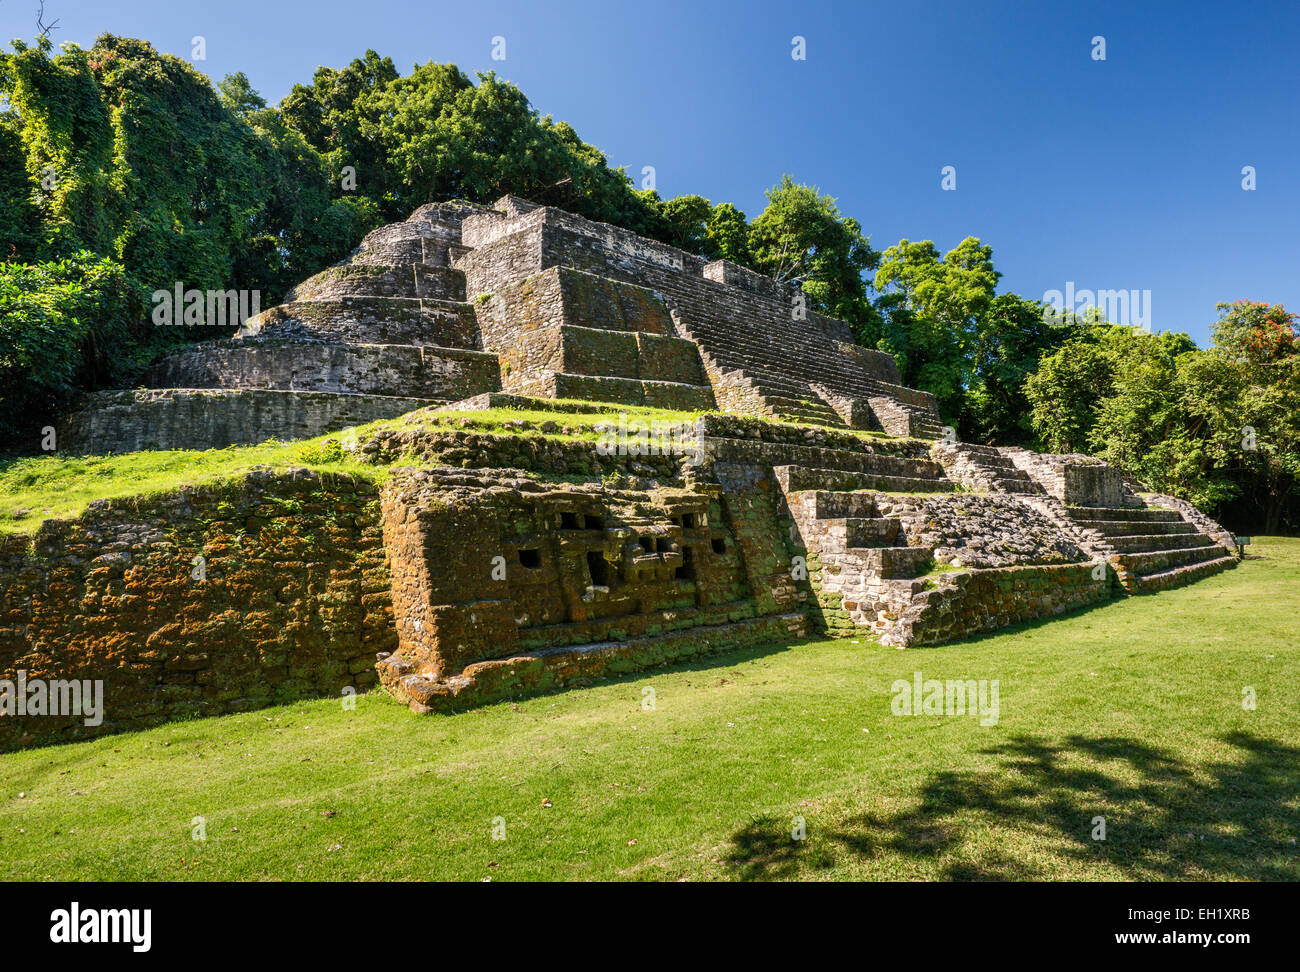 Jaguar Temple at Lamanai, Maya ruins, rainforest near Indian Church village, Orange Walk District, Belize - Stock Image